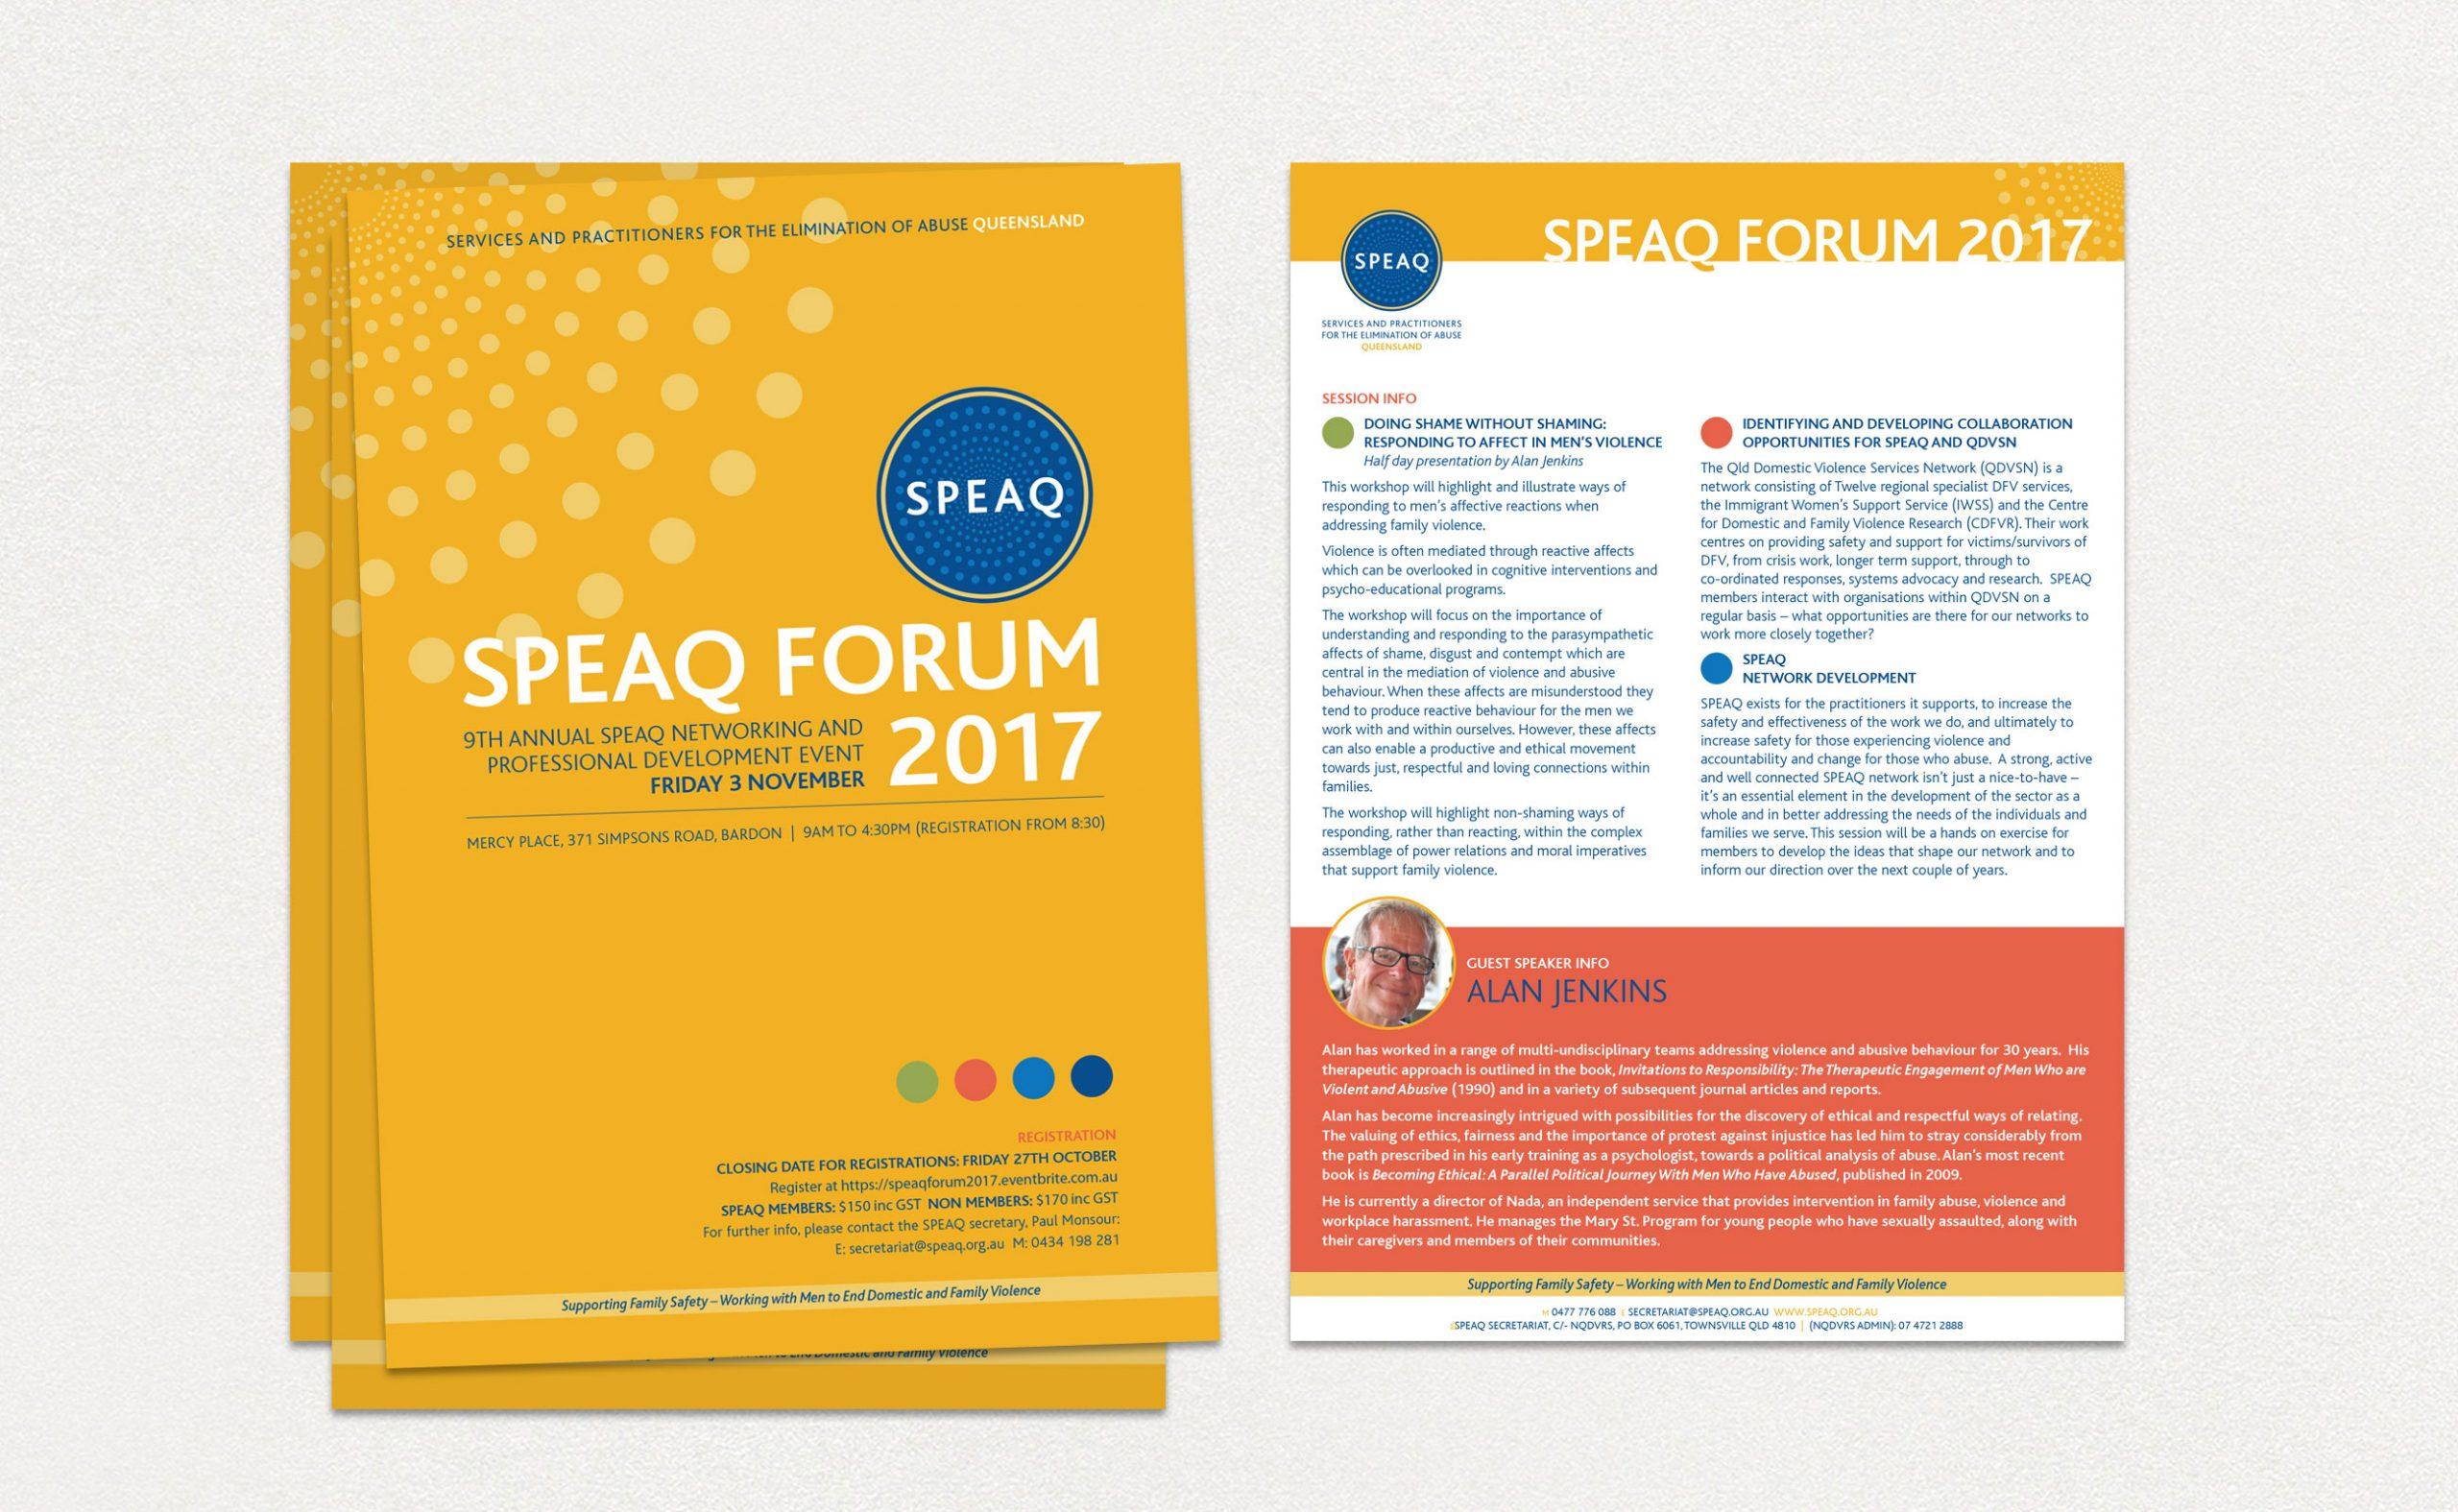 SPEAQ flyer front and back views